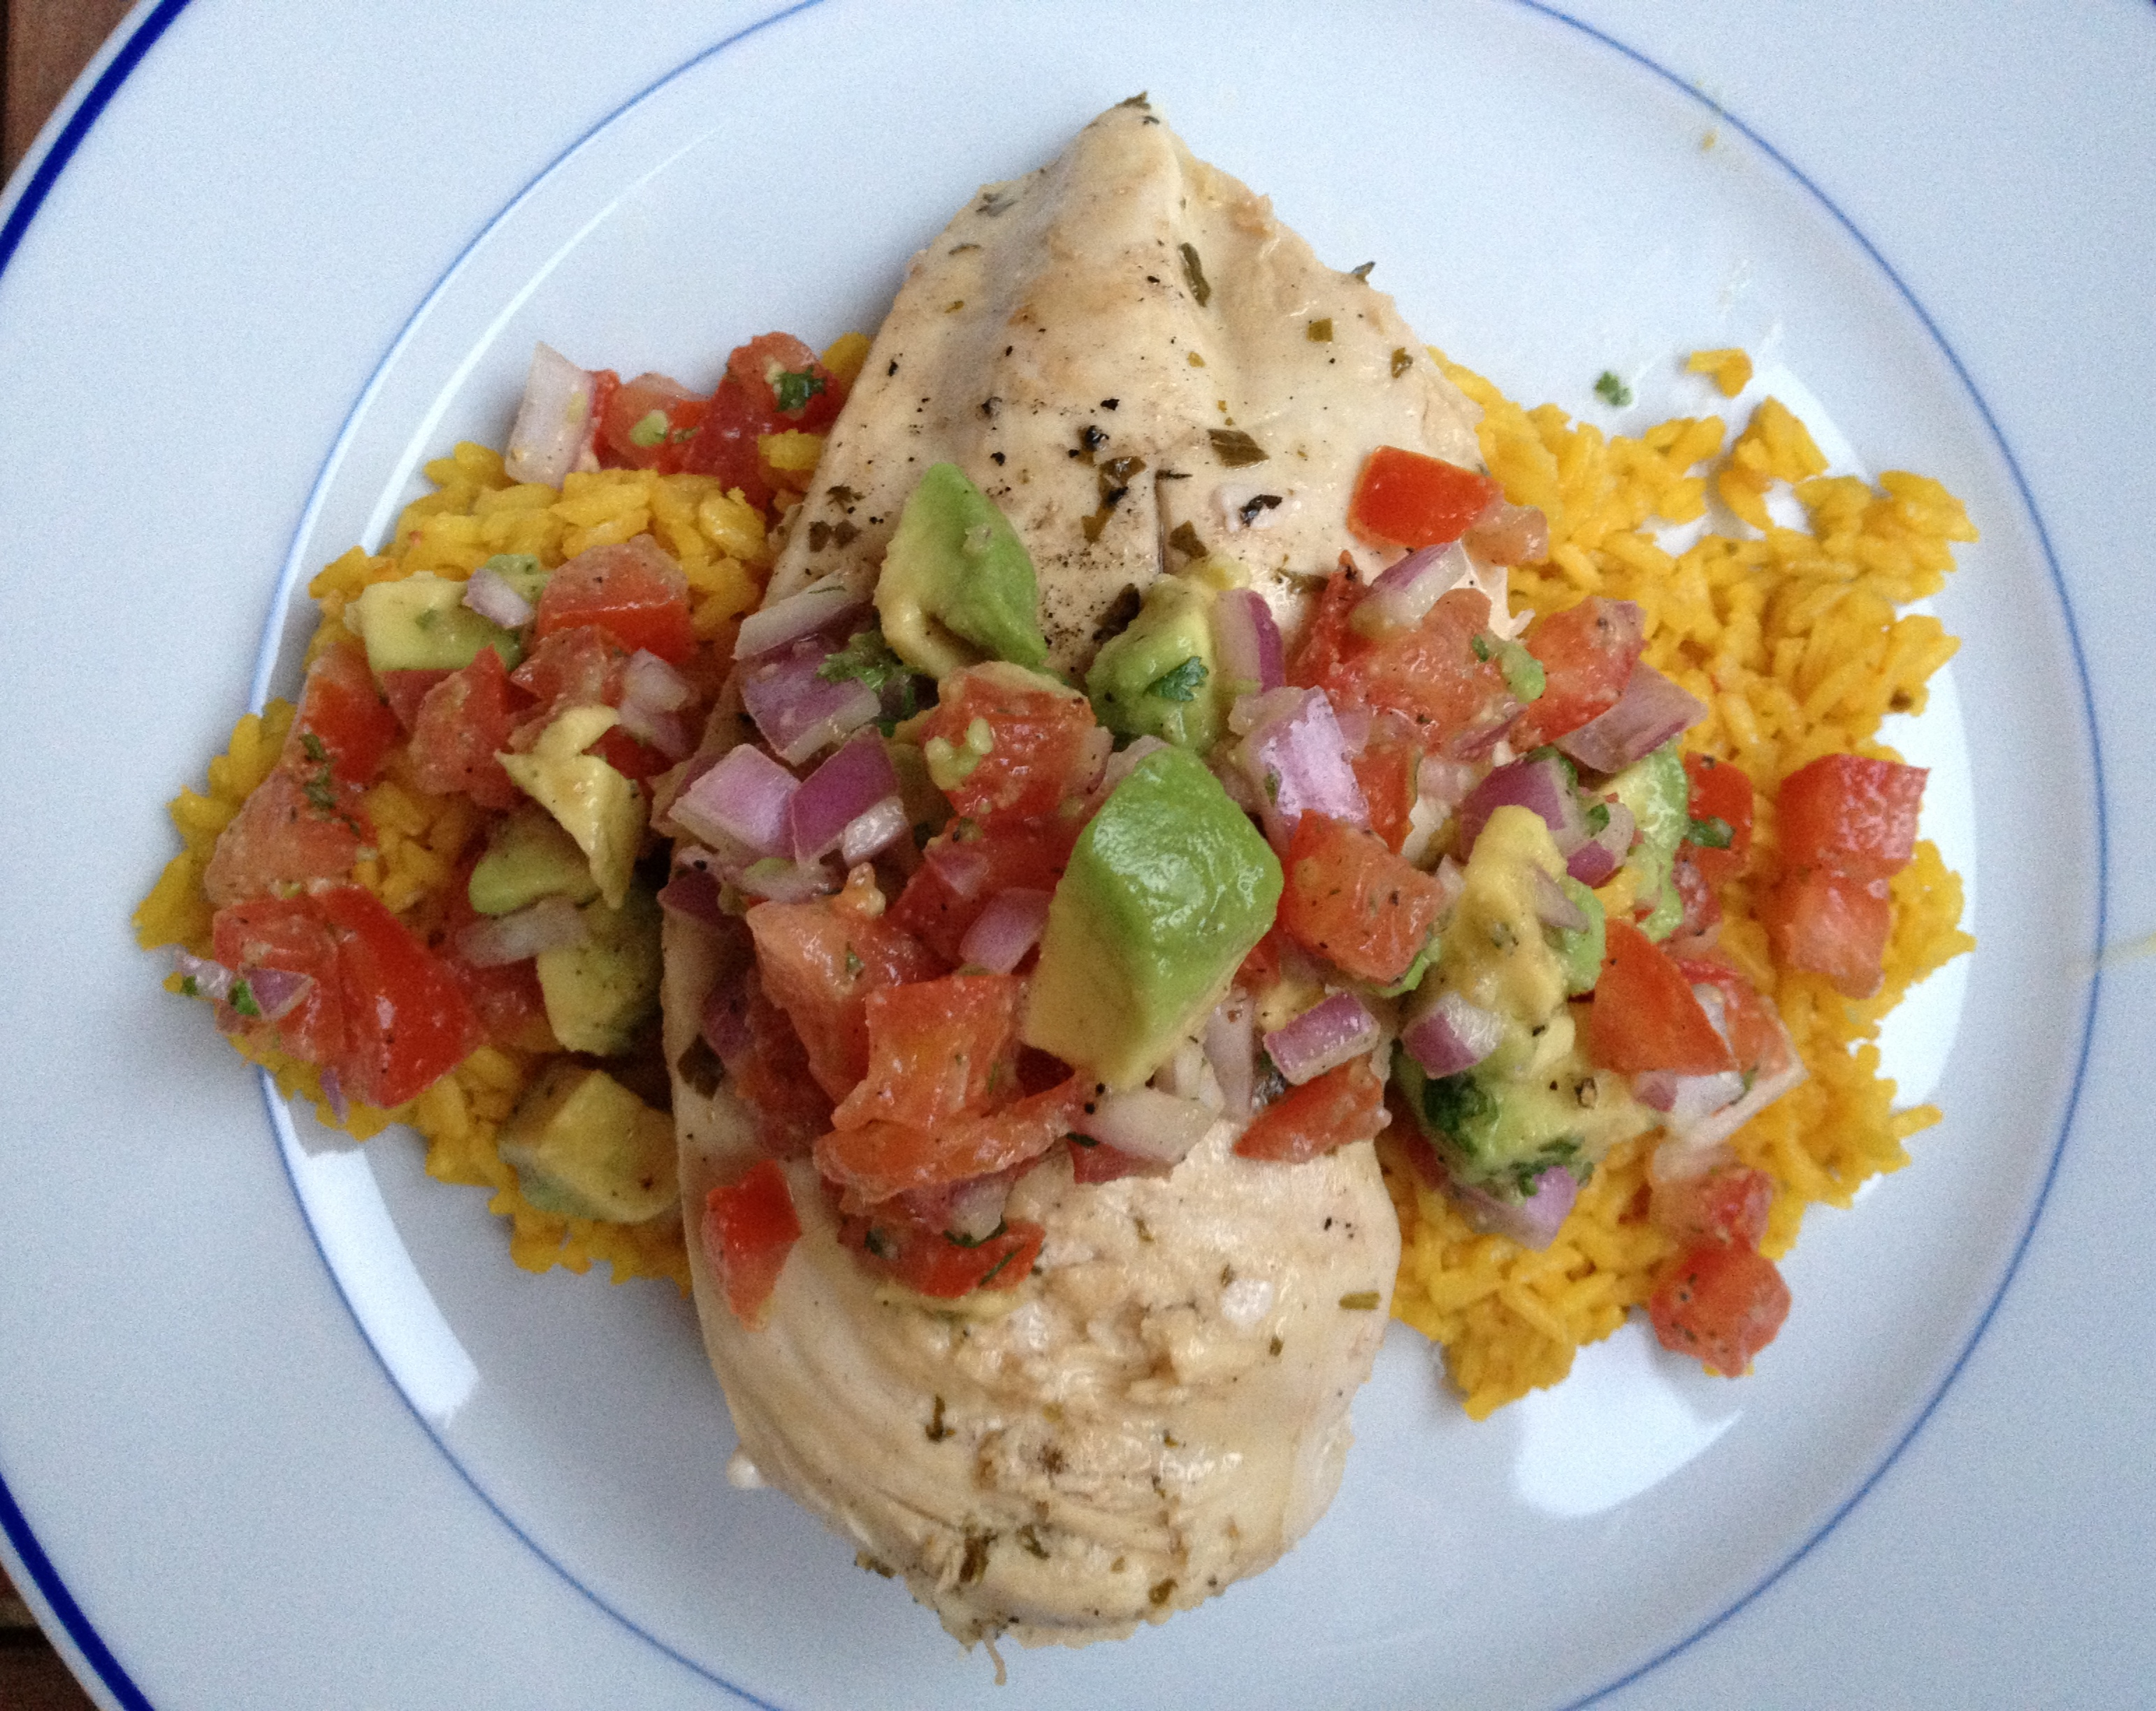 Cilantro-Lemon Chicken with Avocado Salsa